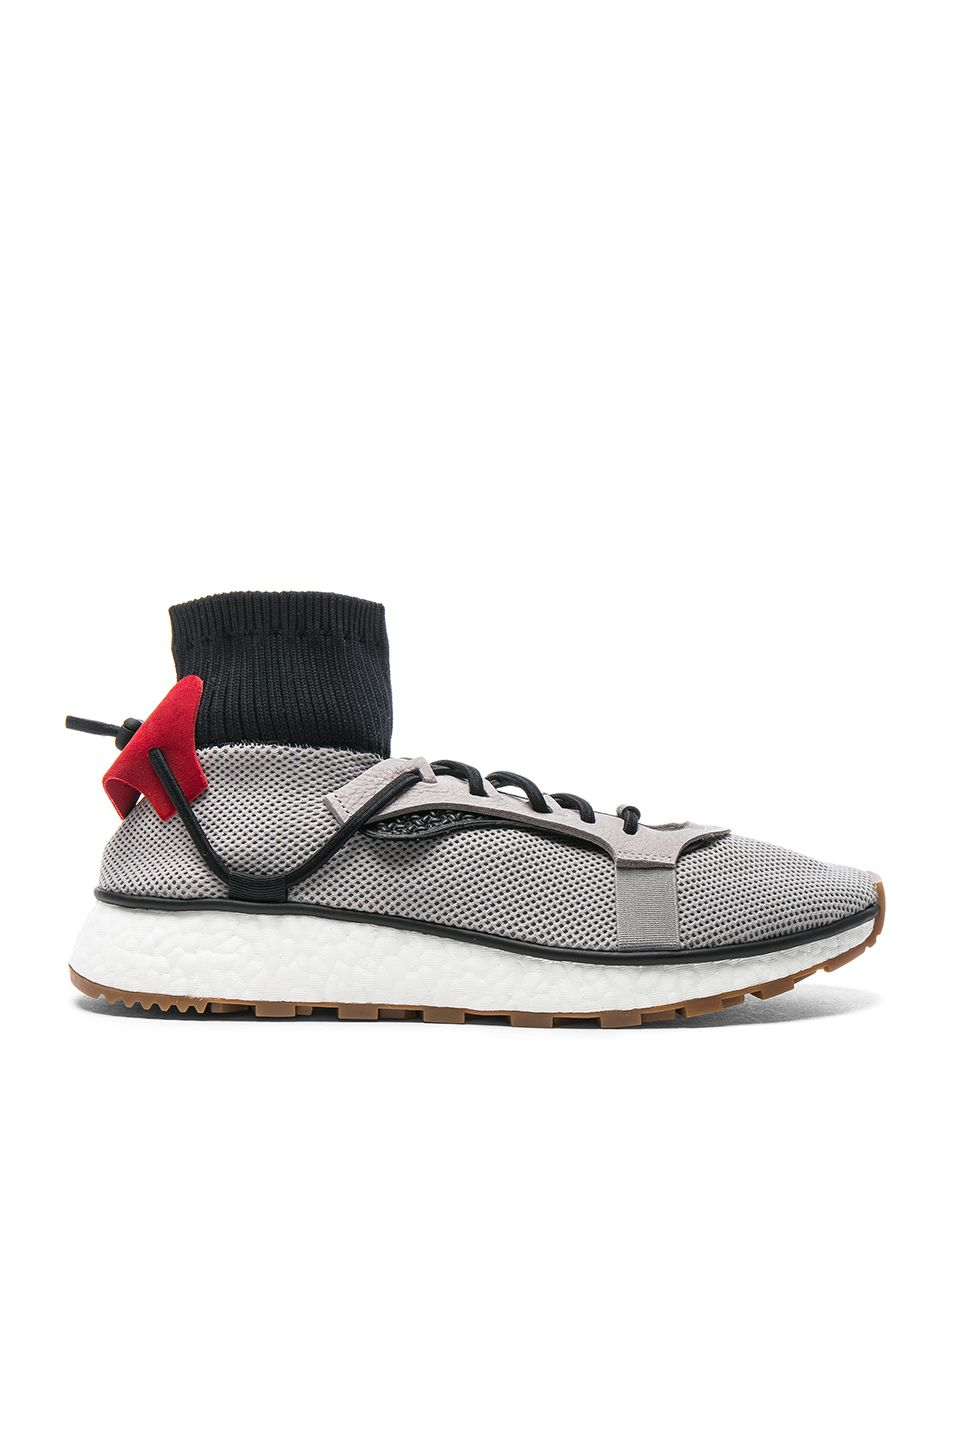 b696ccf09f92 ADIDAS ORIGINALS BY ALEXANDER WANG Run Sneakers.   adidasoriginalsbyalexanderwang  shoes